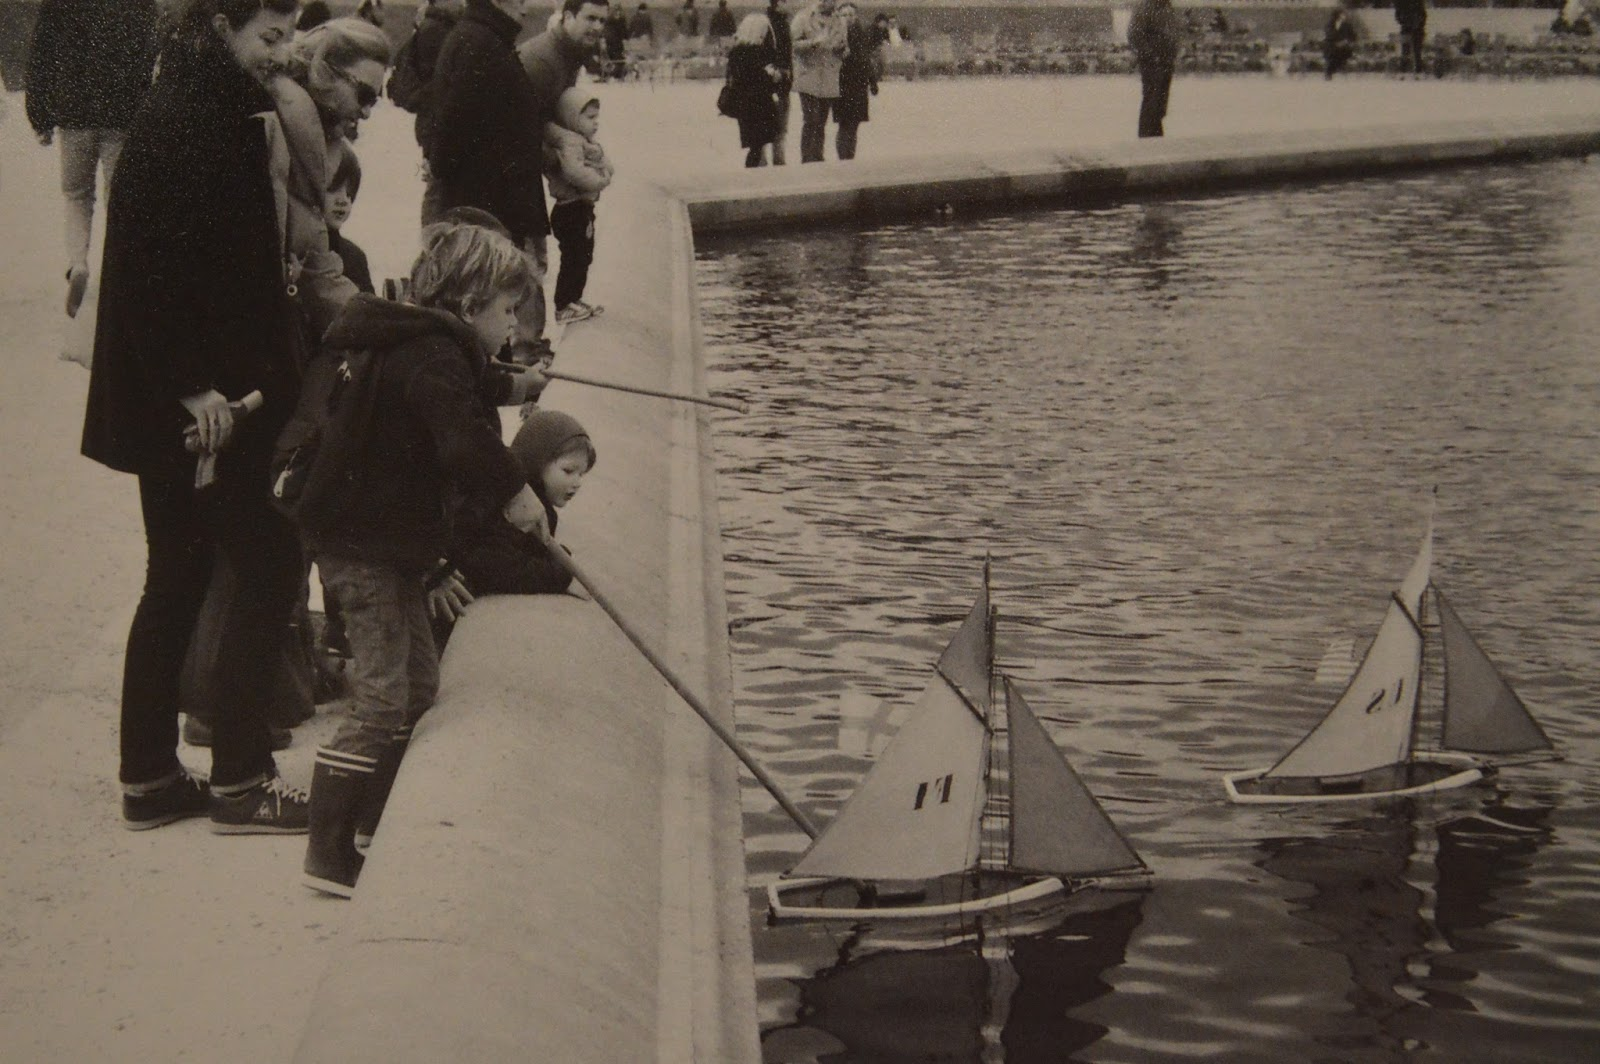 Photography: Boys sailing boats in Luxembourg gardens, Paris